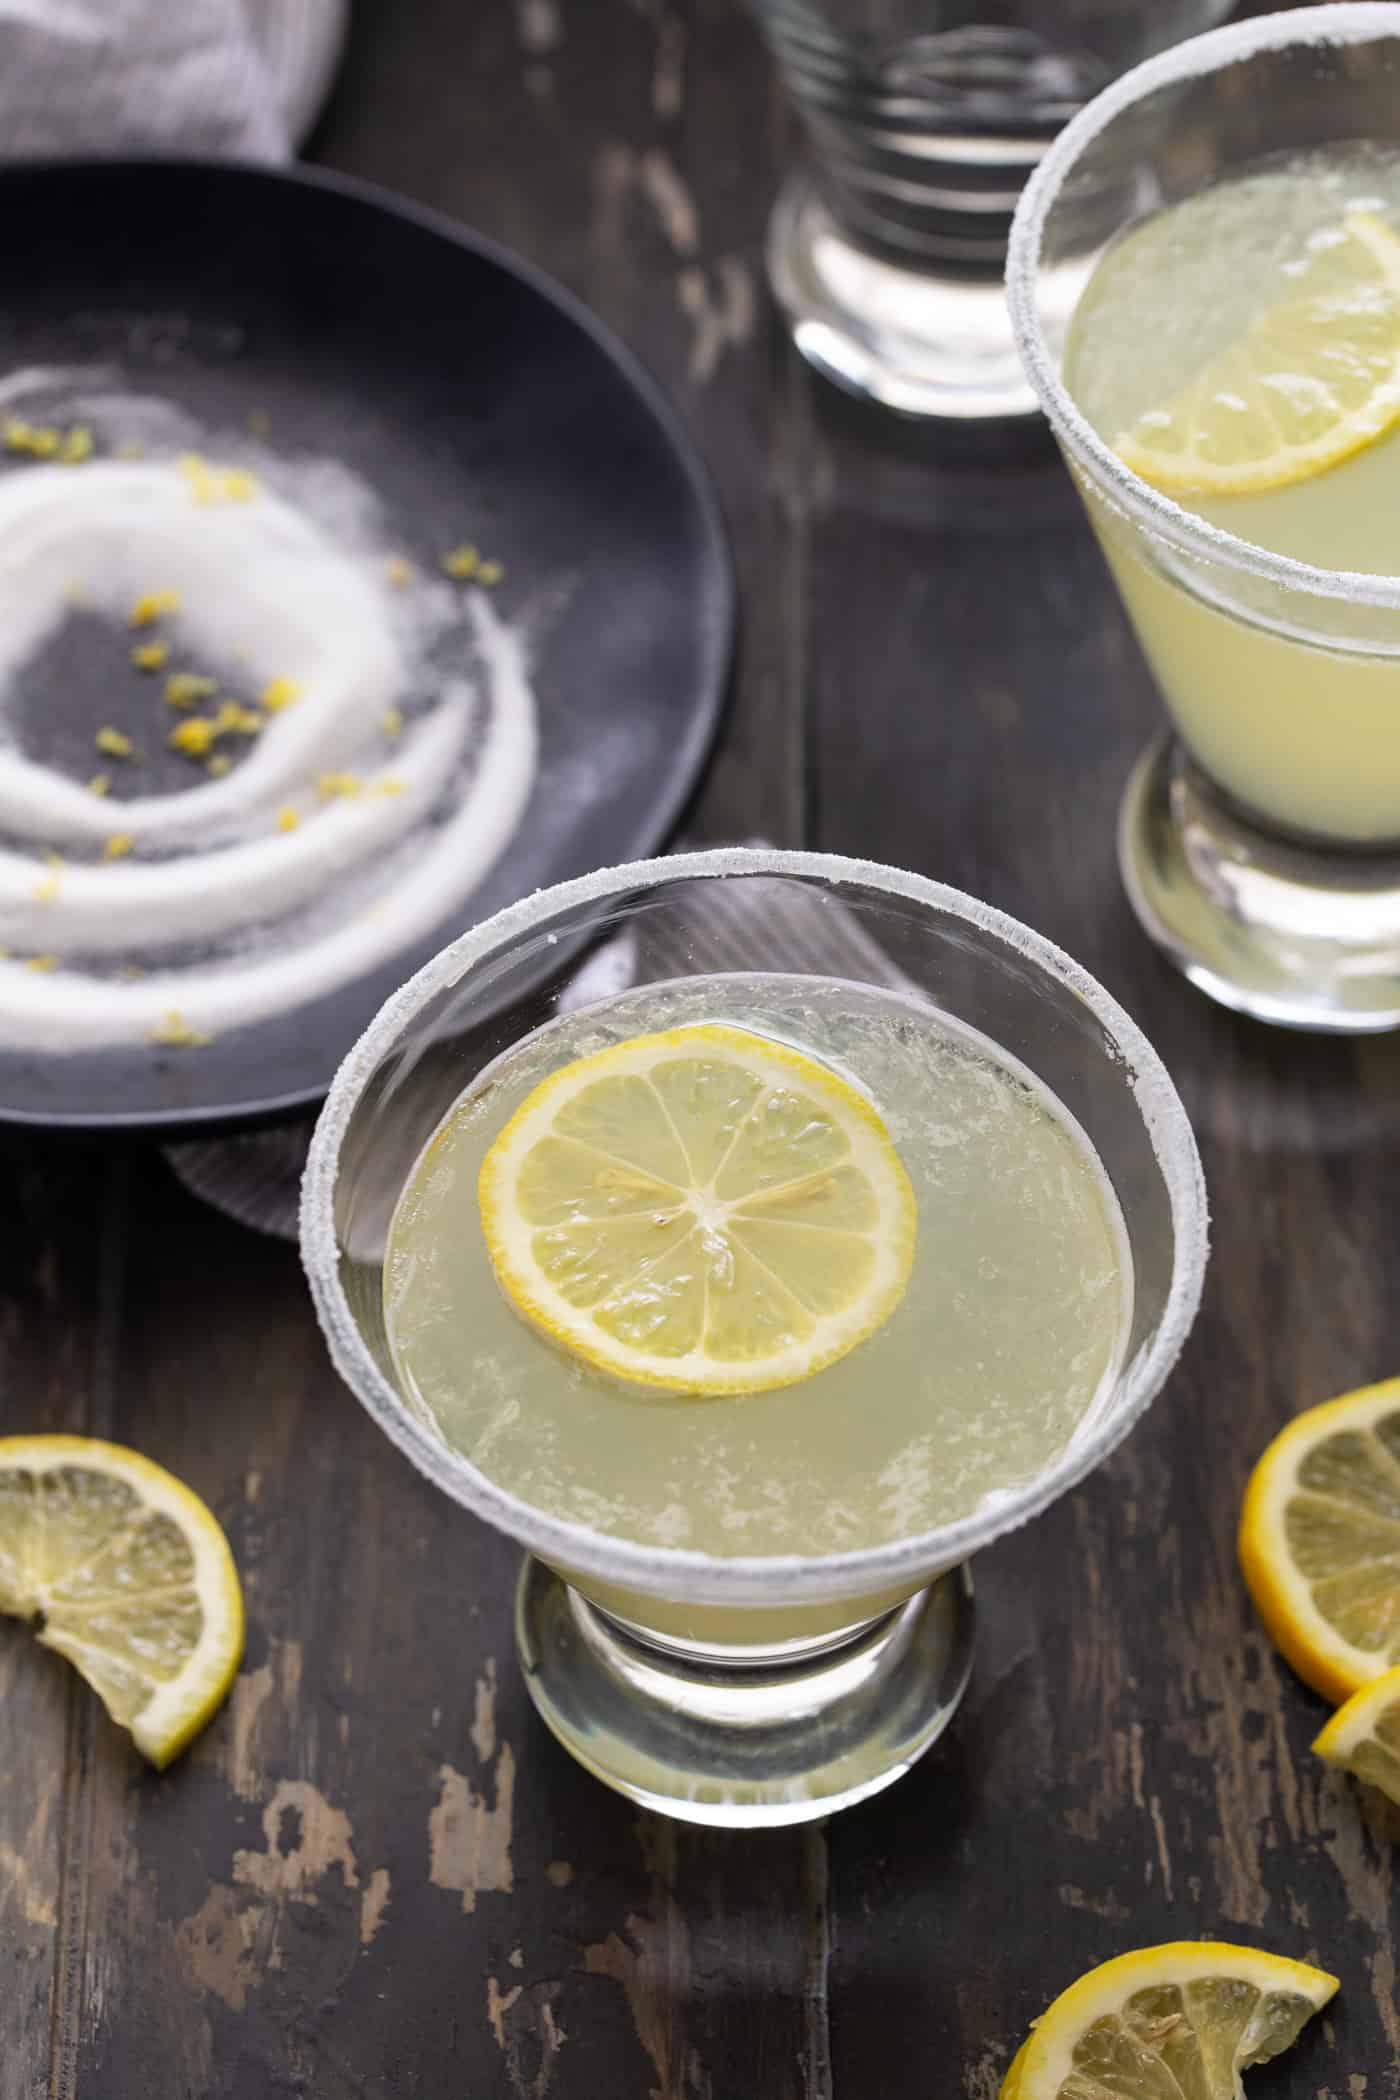 Lemon Drop Martini recipe in a low martini glass with a sugared rim and garnished with a fresh lemon wheel.